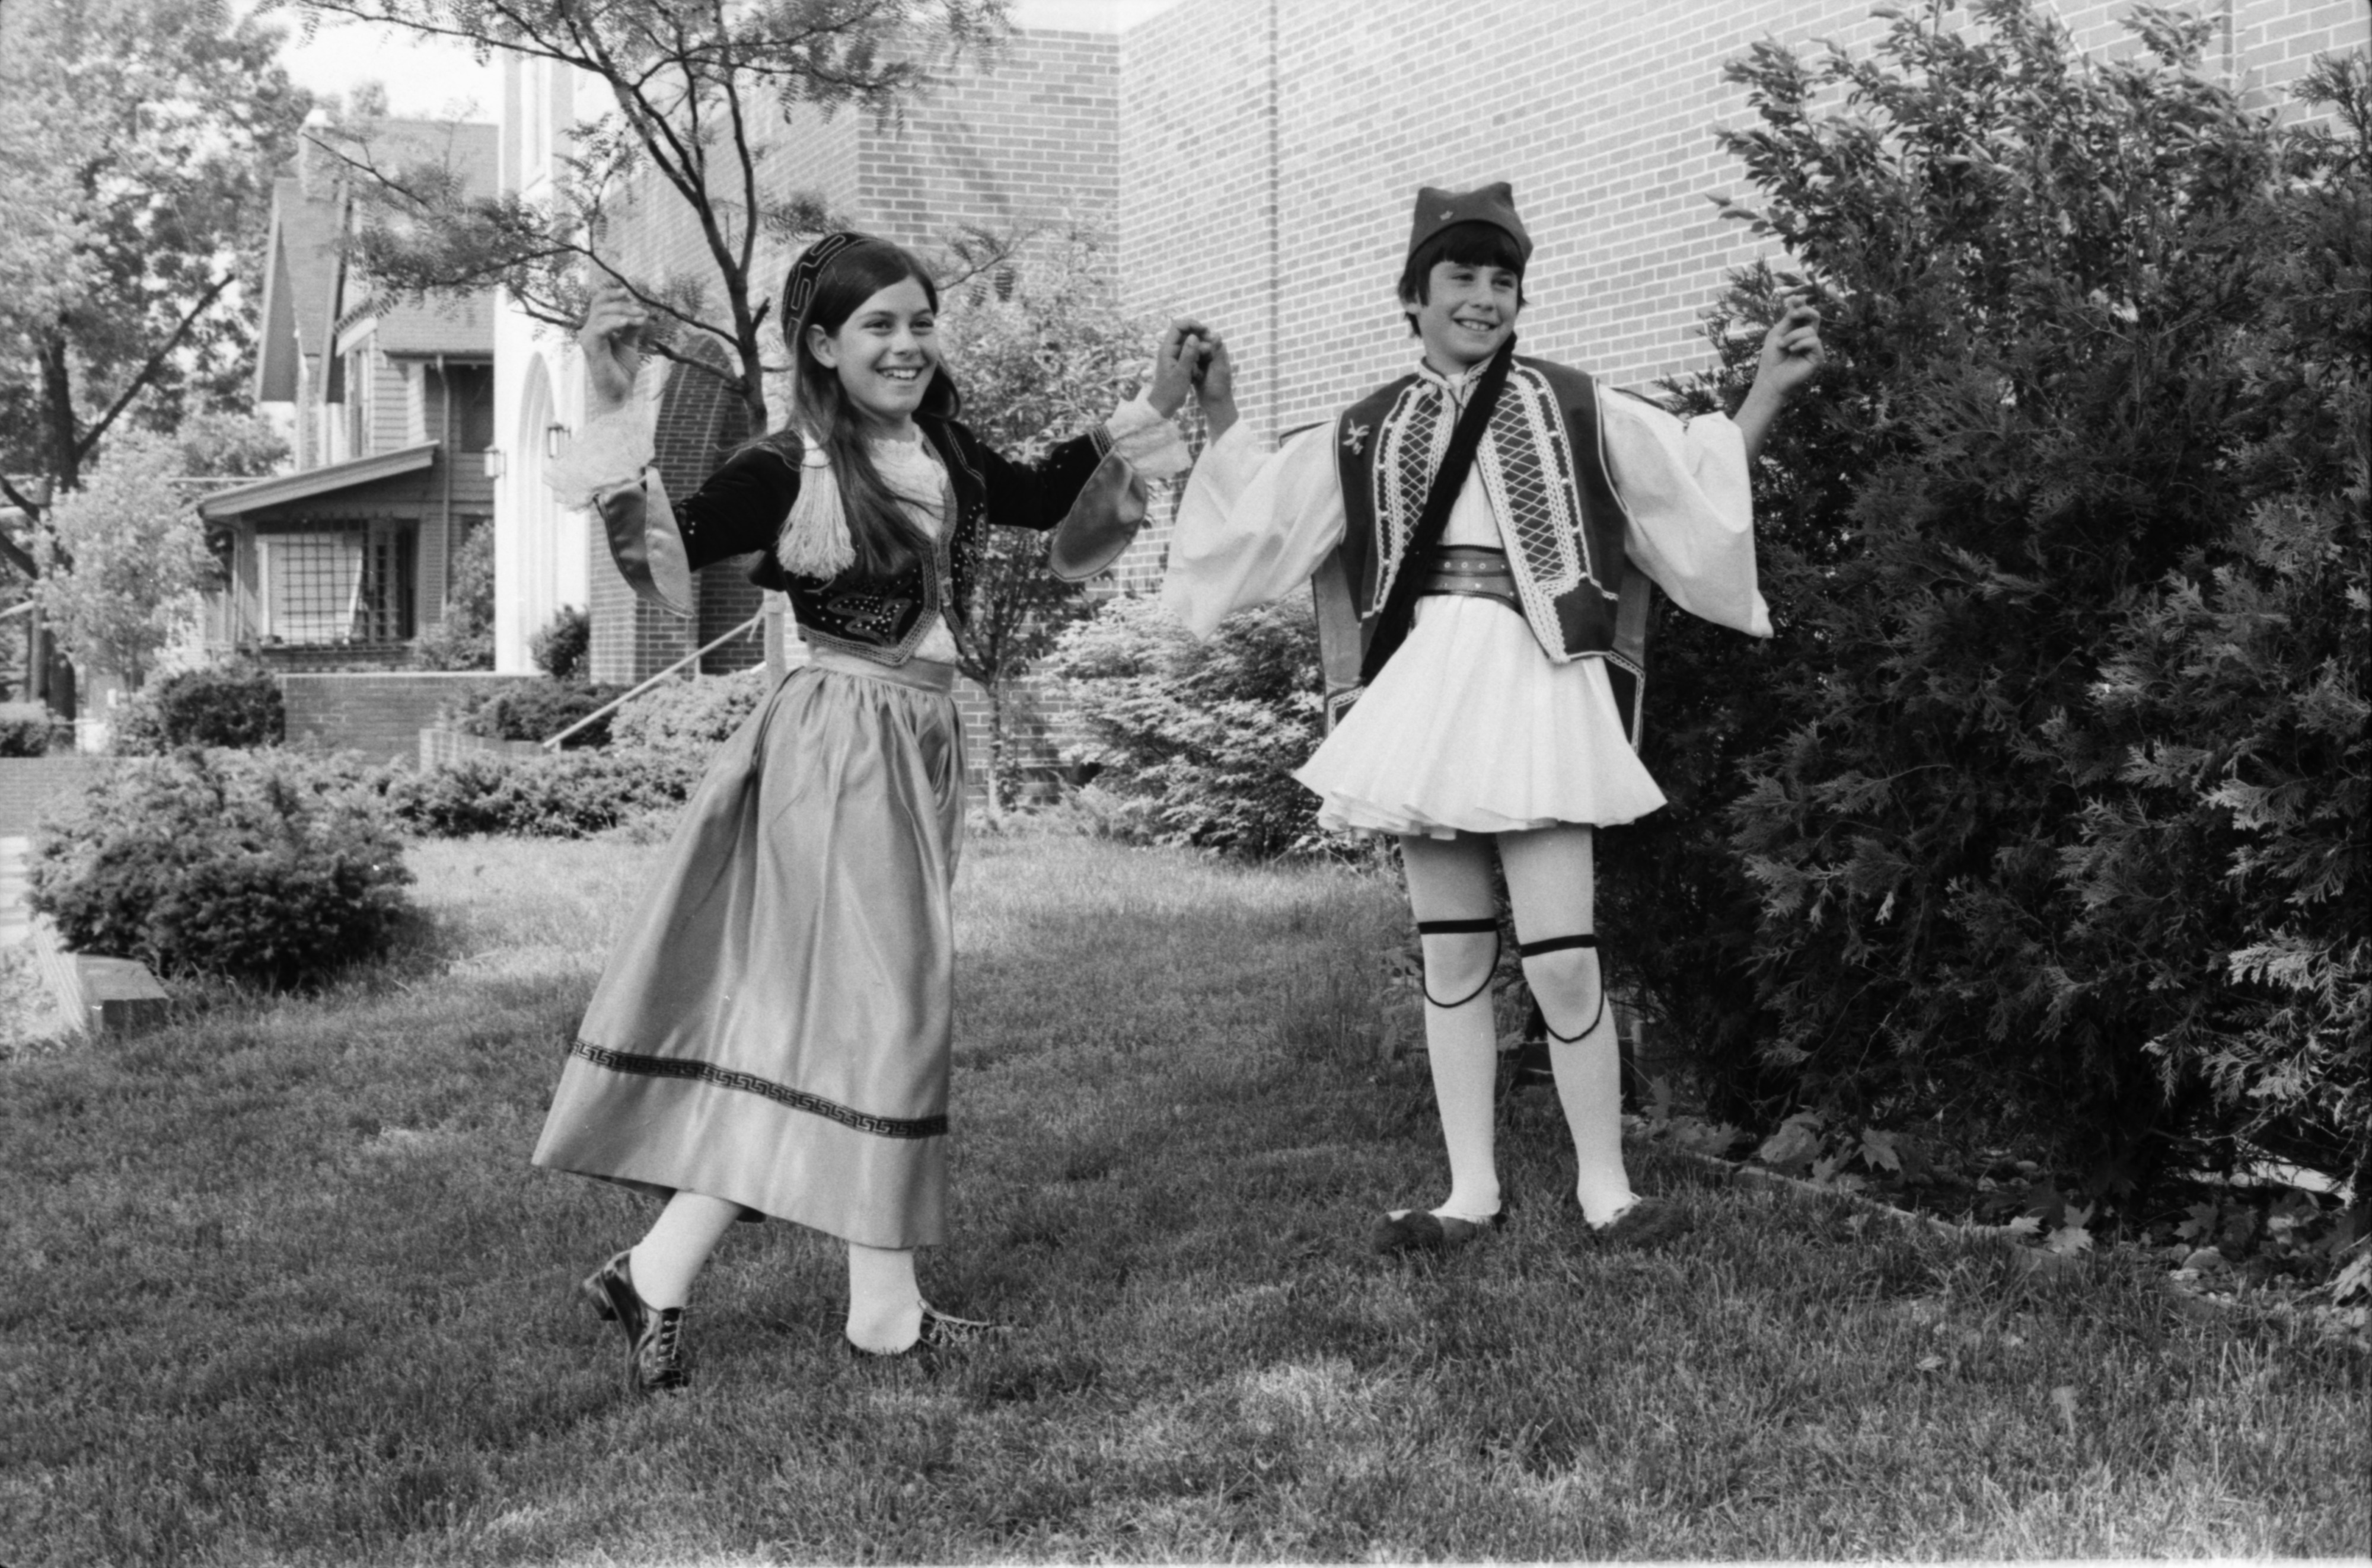 Greek Festival Dancers Stephanie Savos and Theo Michos, June 1974 image